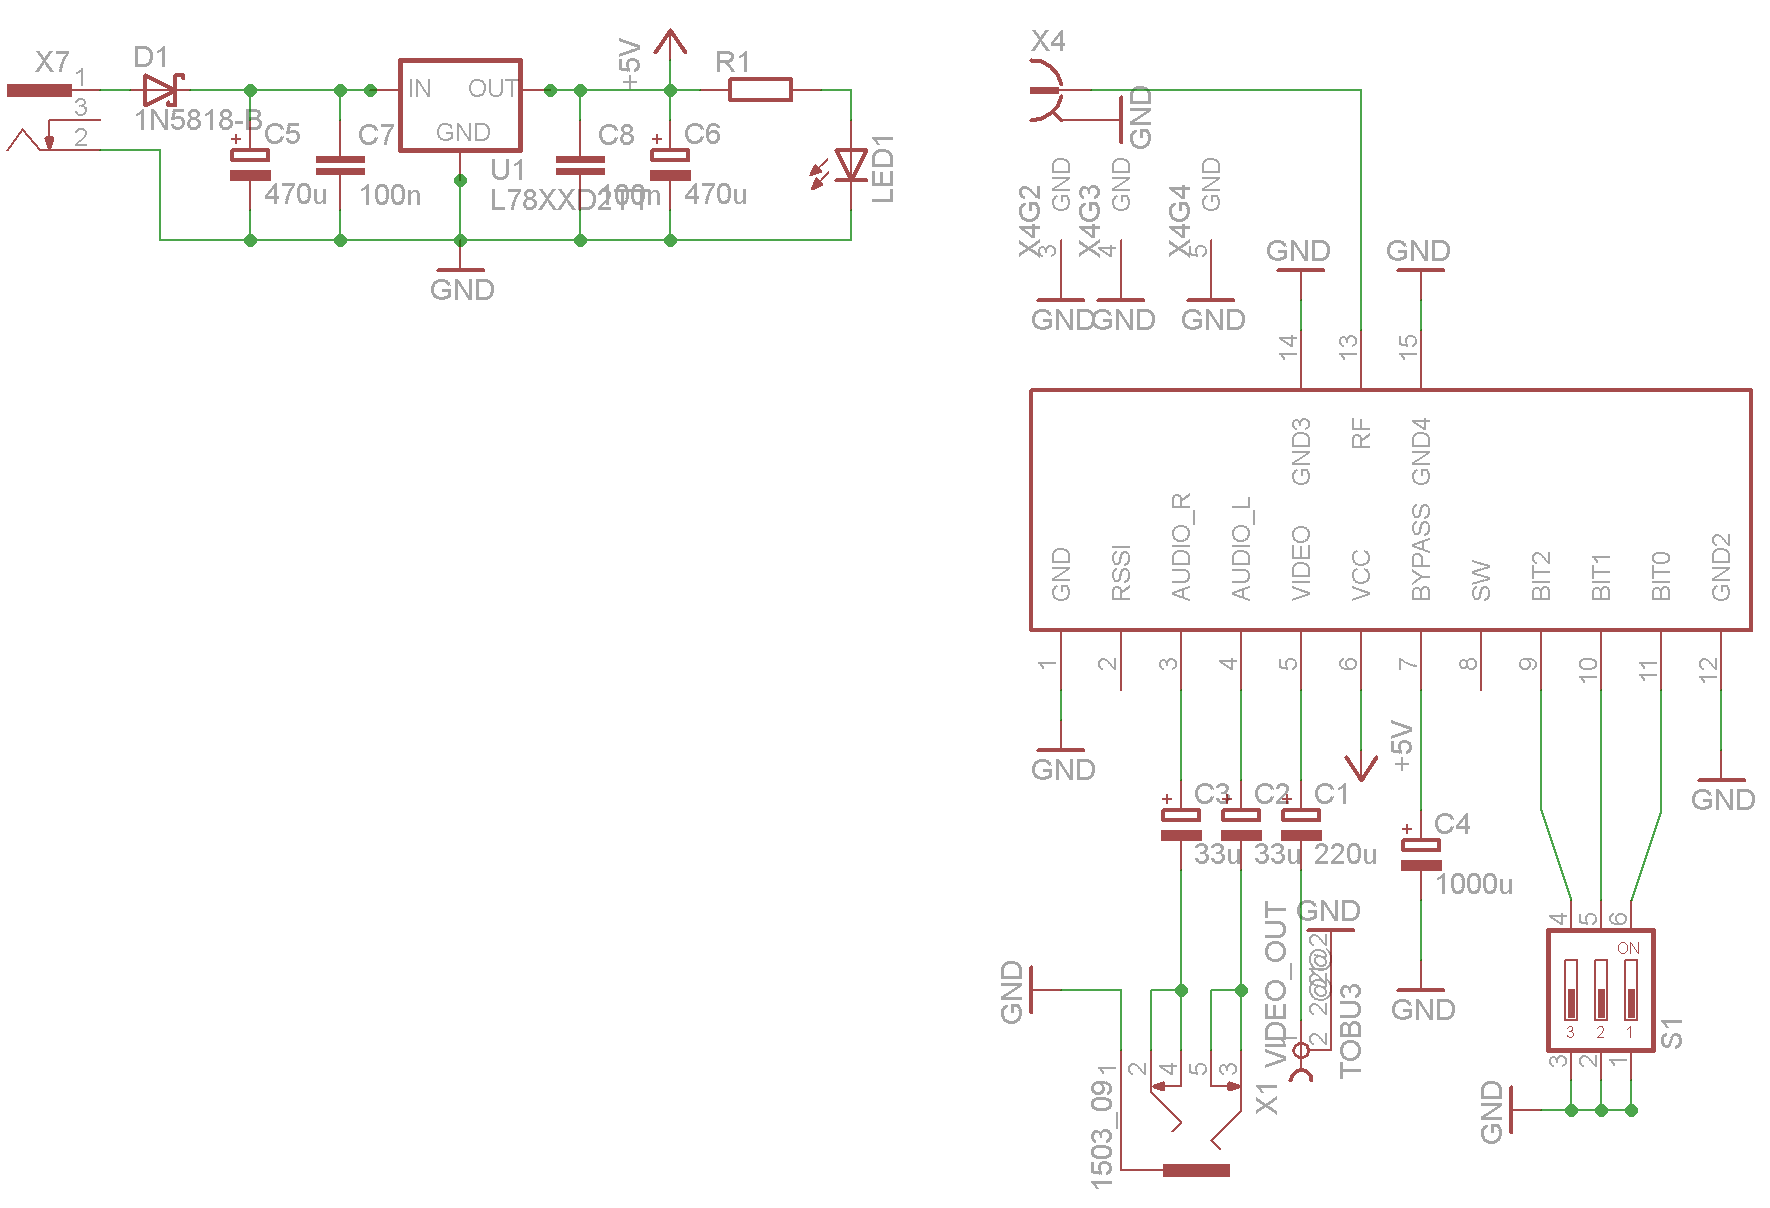 AWM680RX_R1-0_schematic.png